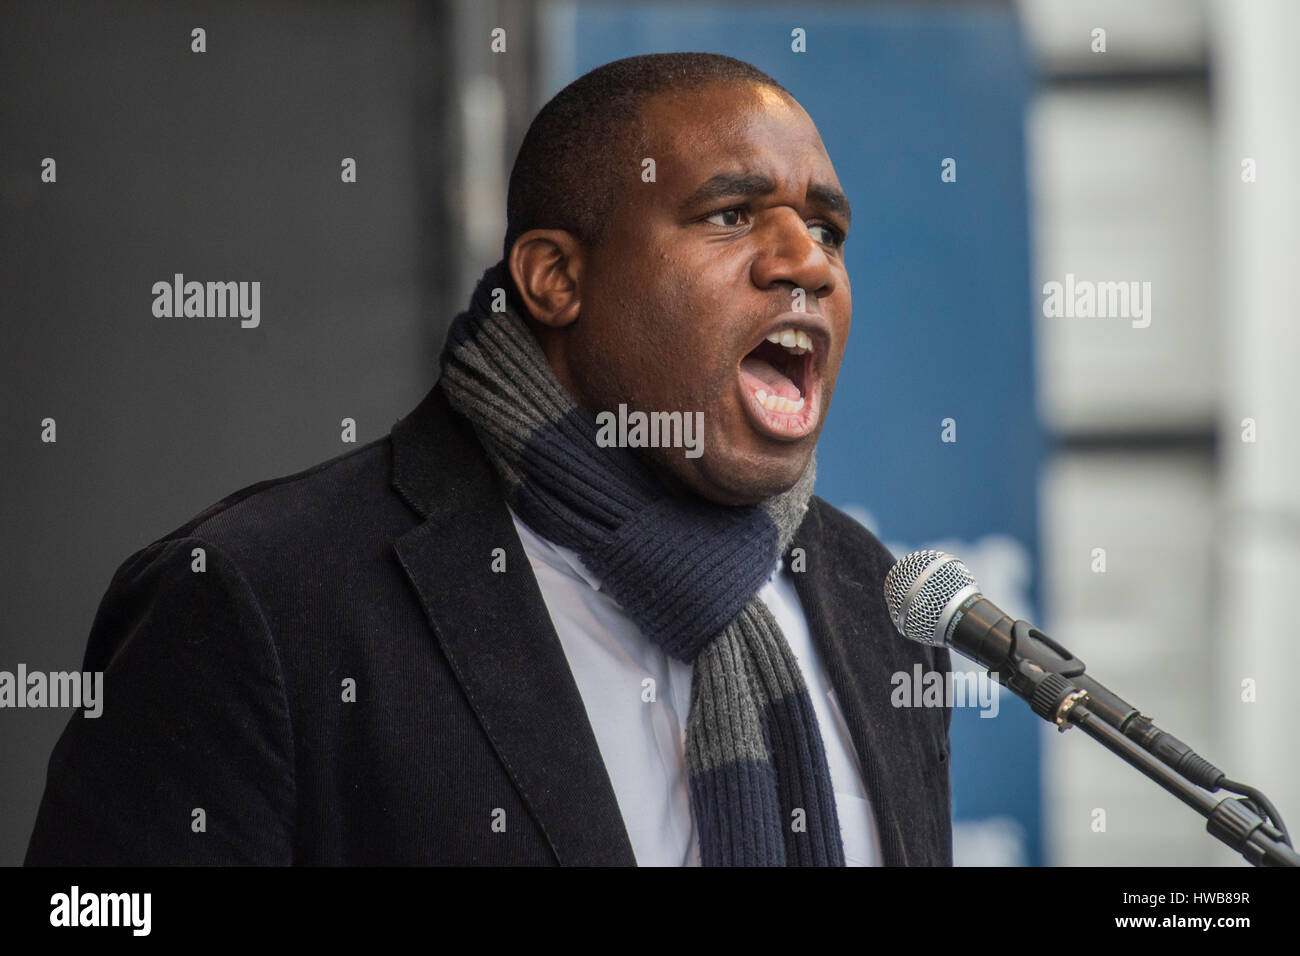 London, UK. 18th March, 2017. David Lammy MP - A march against racism, organised by Stand Up to Racism and supporterd - Stock Image